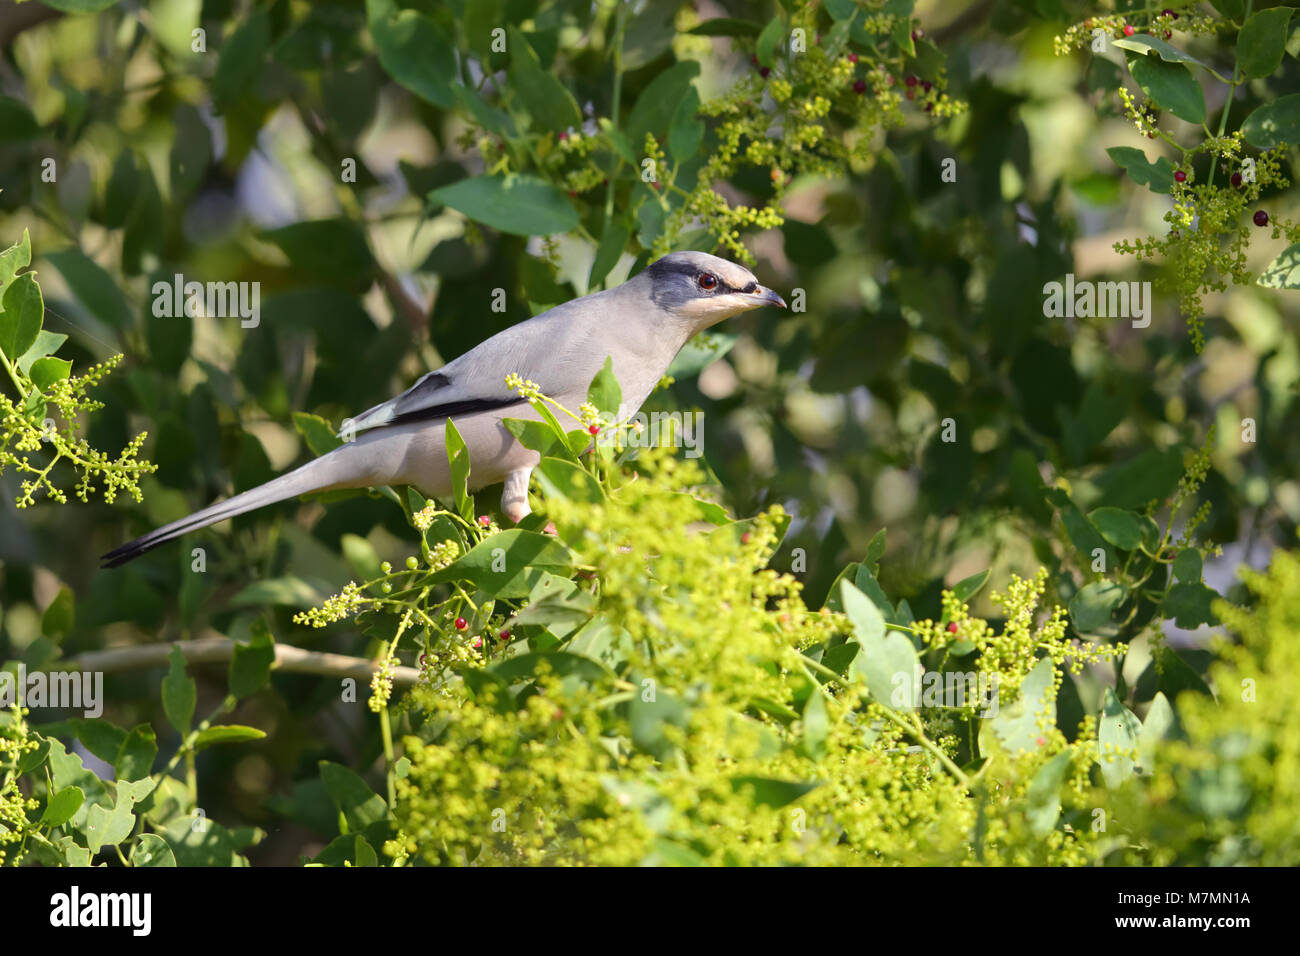 An adult male Grey Hypocolius (Hypocolius ampelinus) feeding on a fruiting tree in the Kutch region of Gujarat, - Stock Image